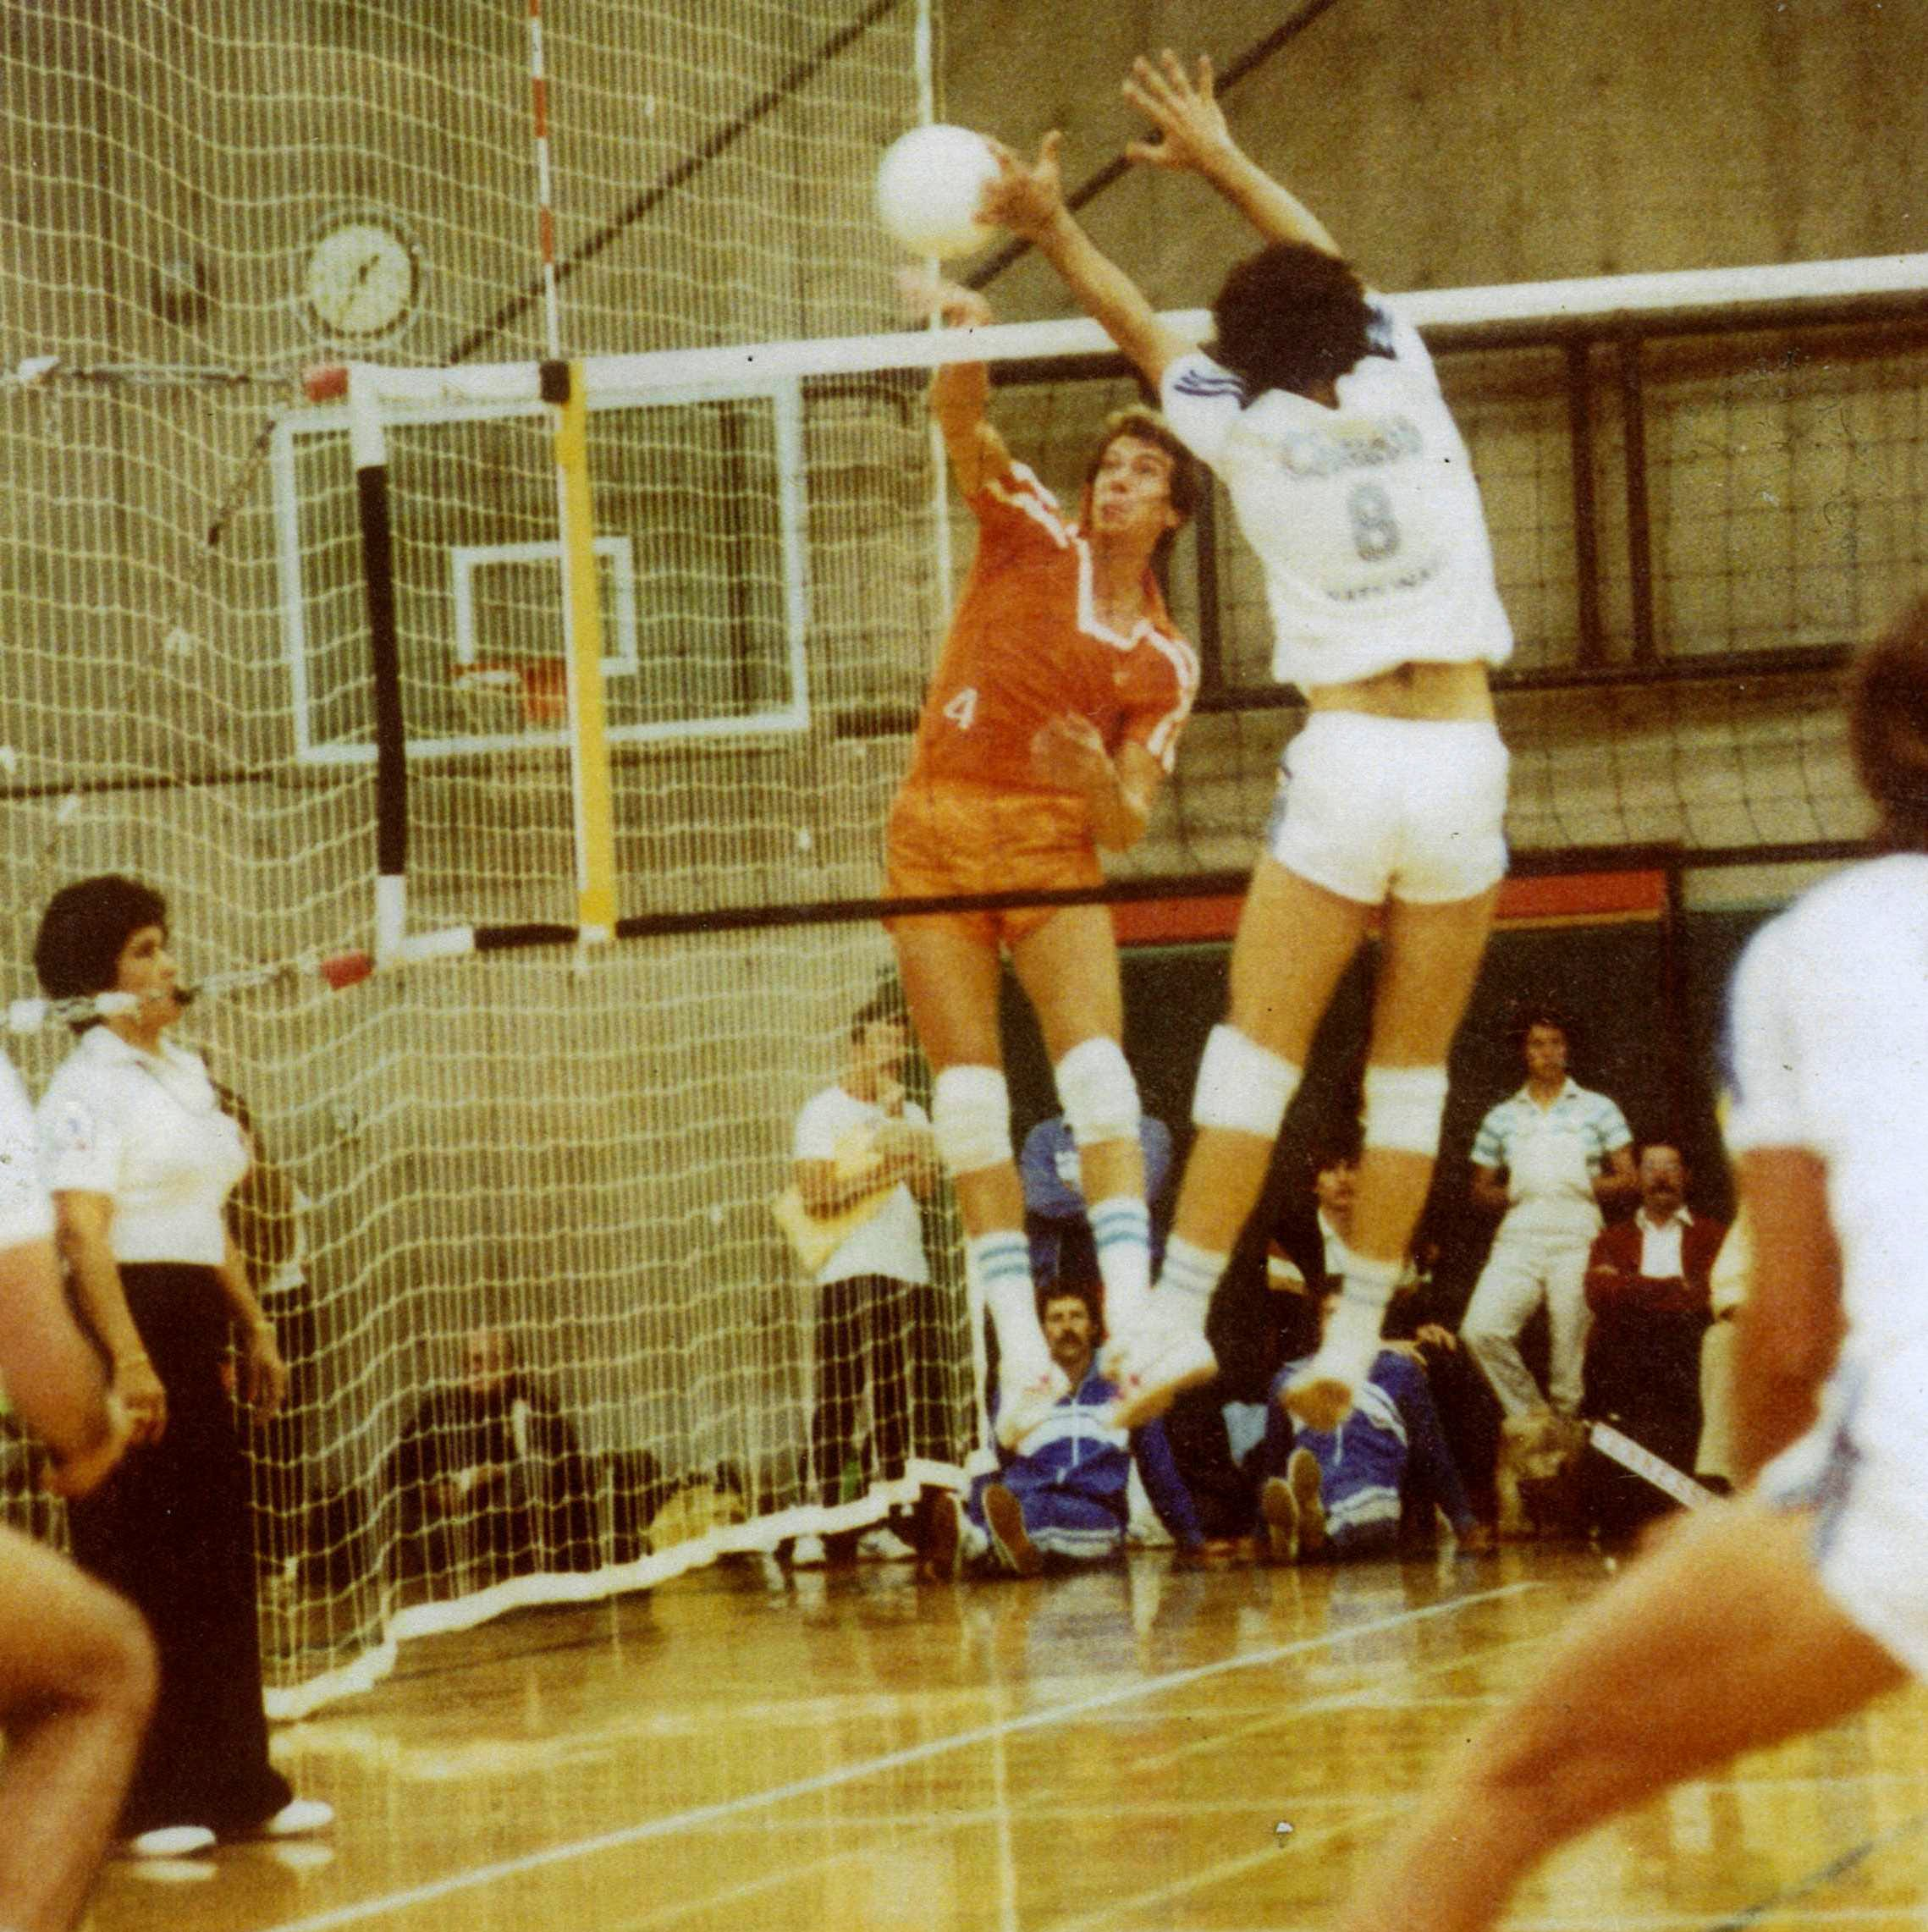 UT volleyball 50th reunion honors Bud Fields, beloved coach